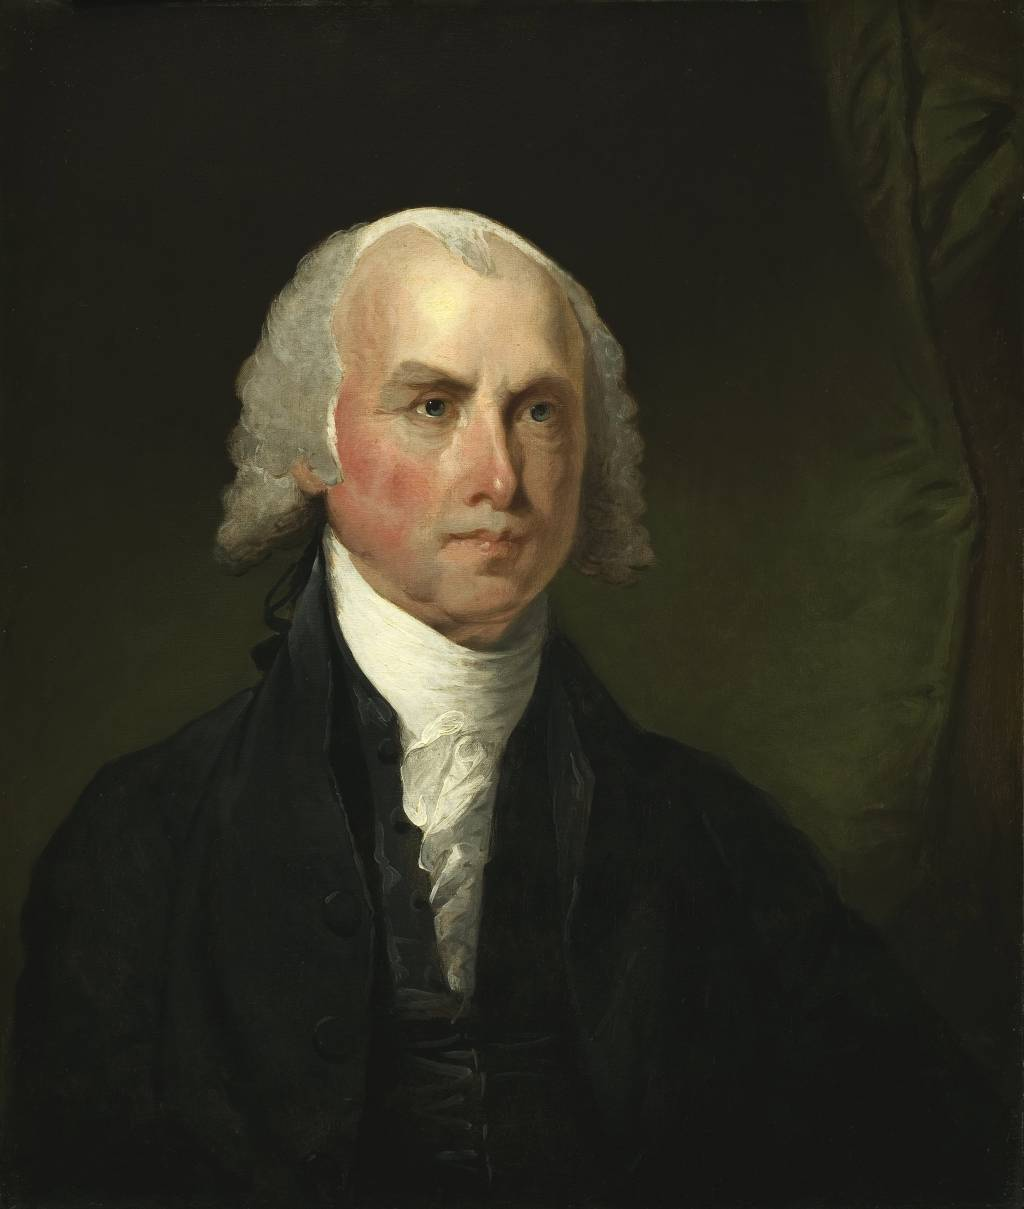 marbury v madison case brief writework secretary of state james madison who won marbury v madison but lost judicial